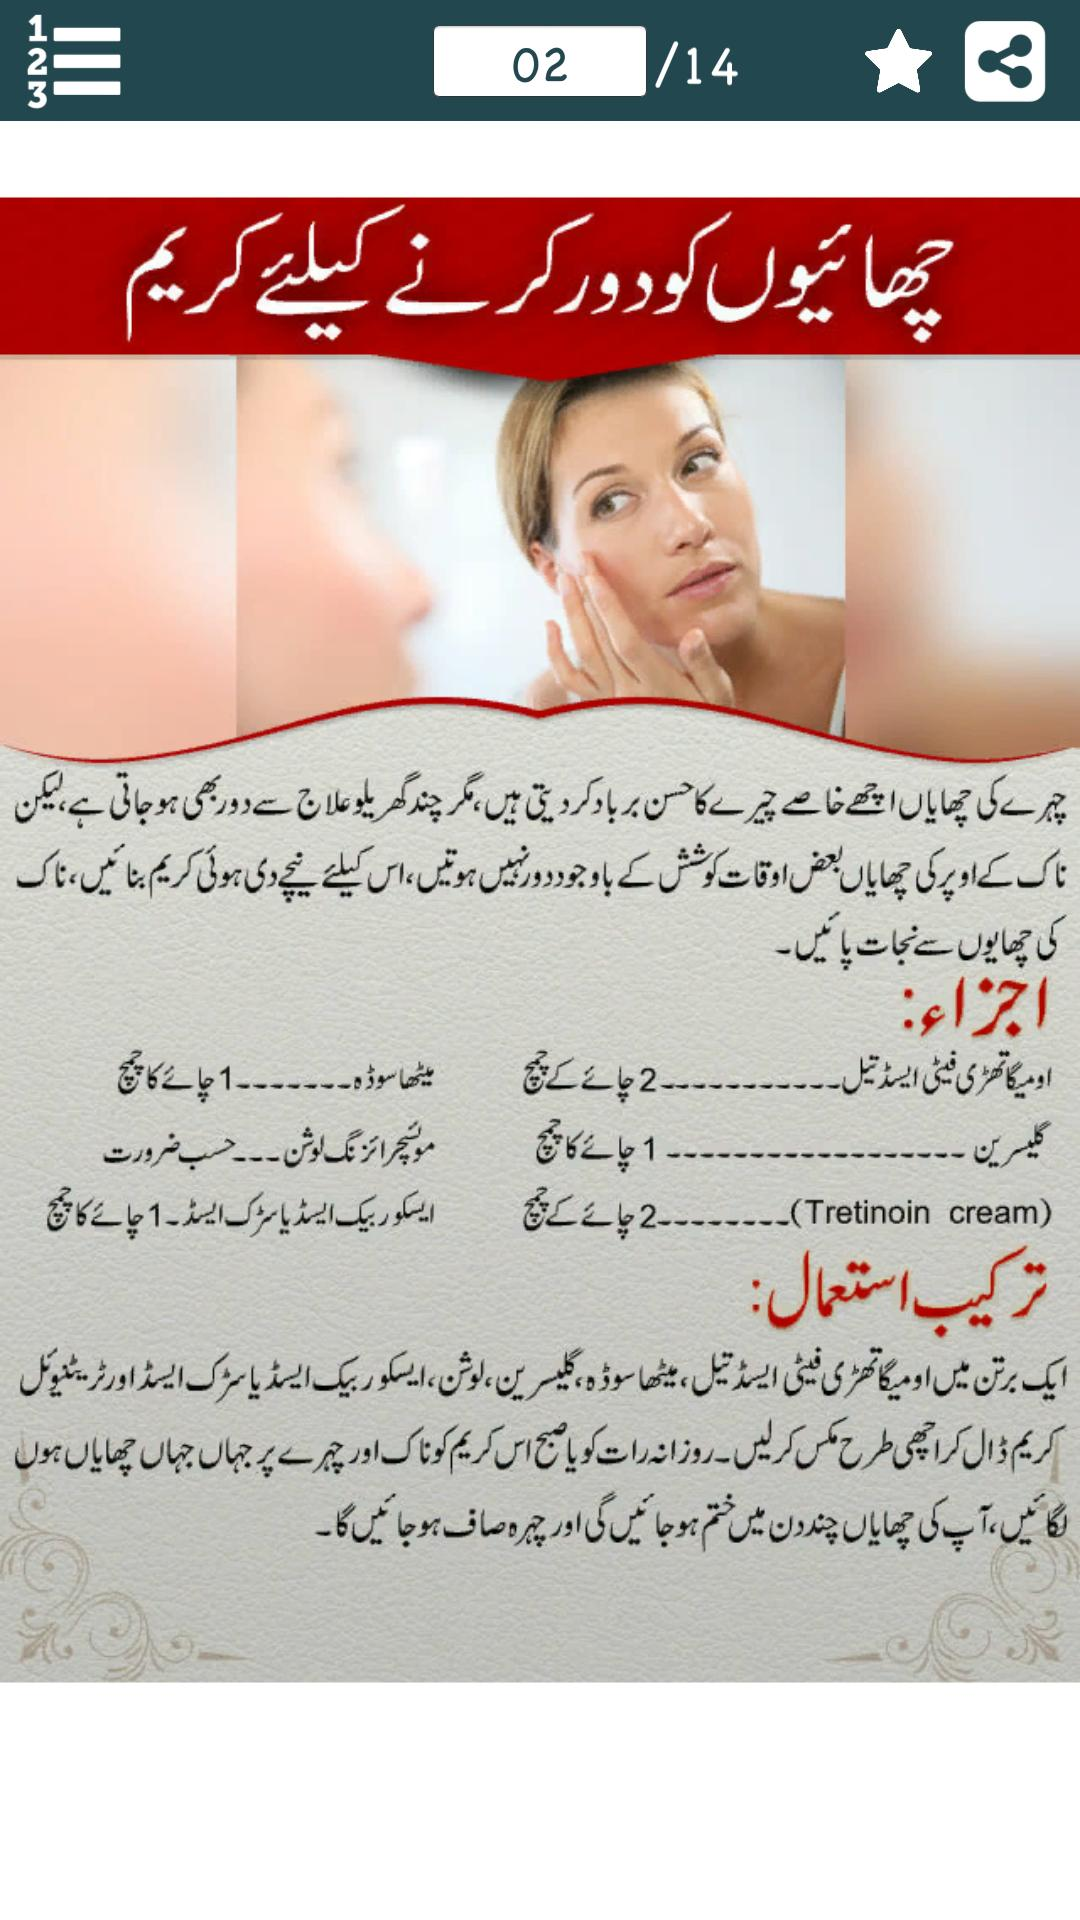 Beauty Tips for Pakistani Girls in URDU for Android - APK Download